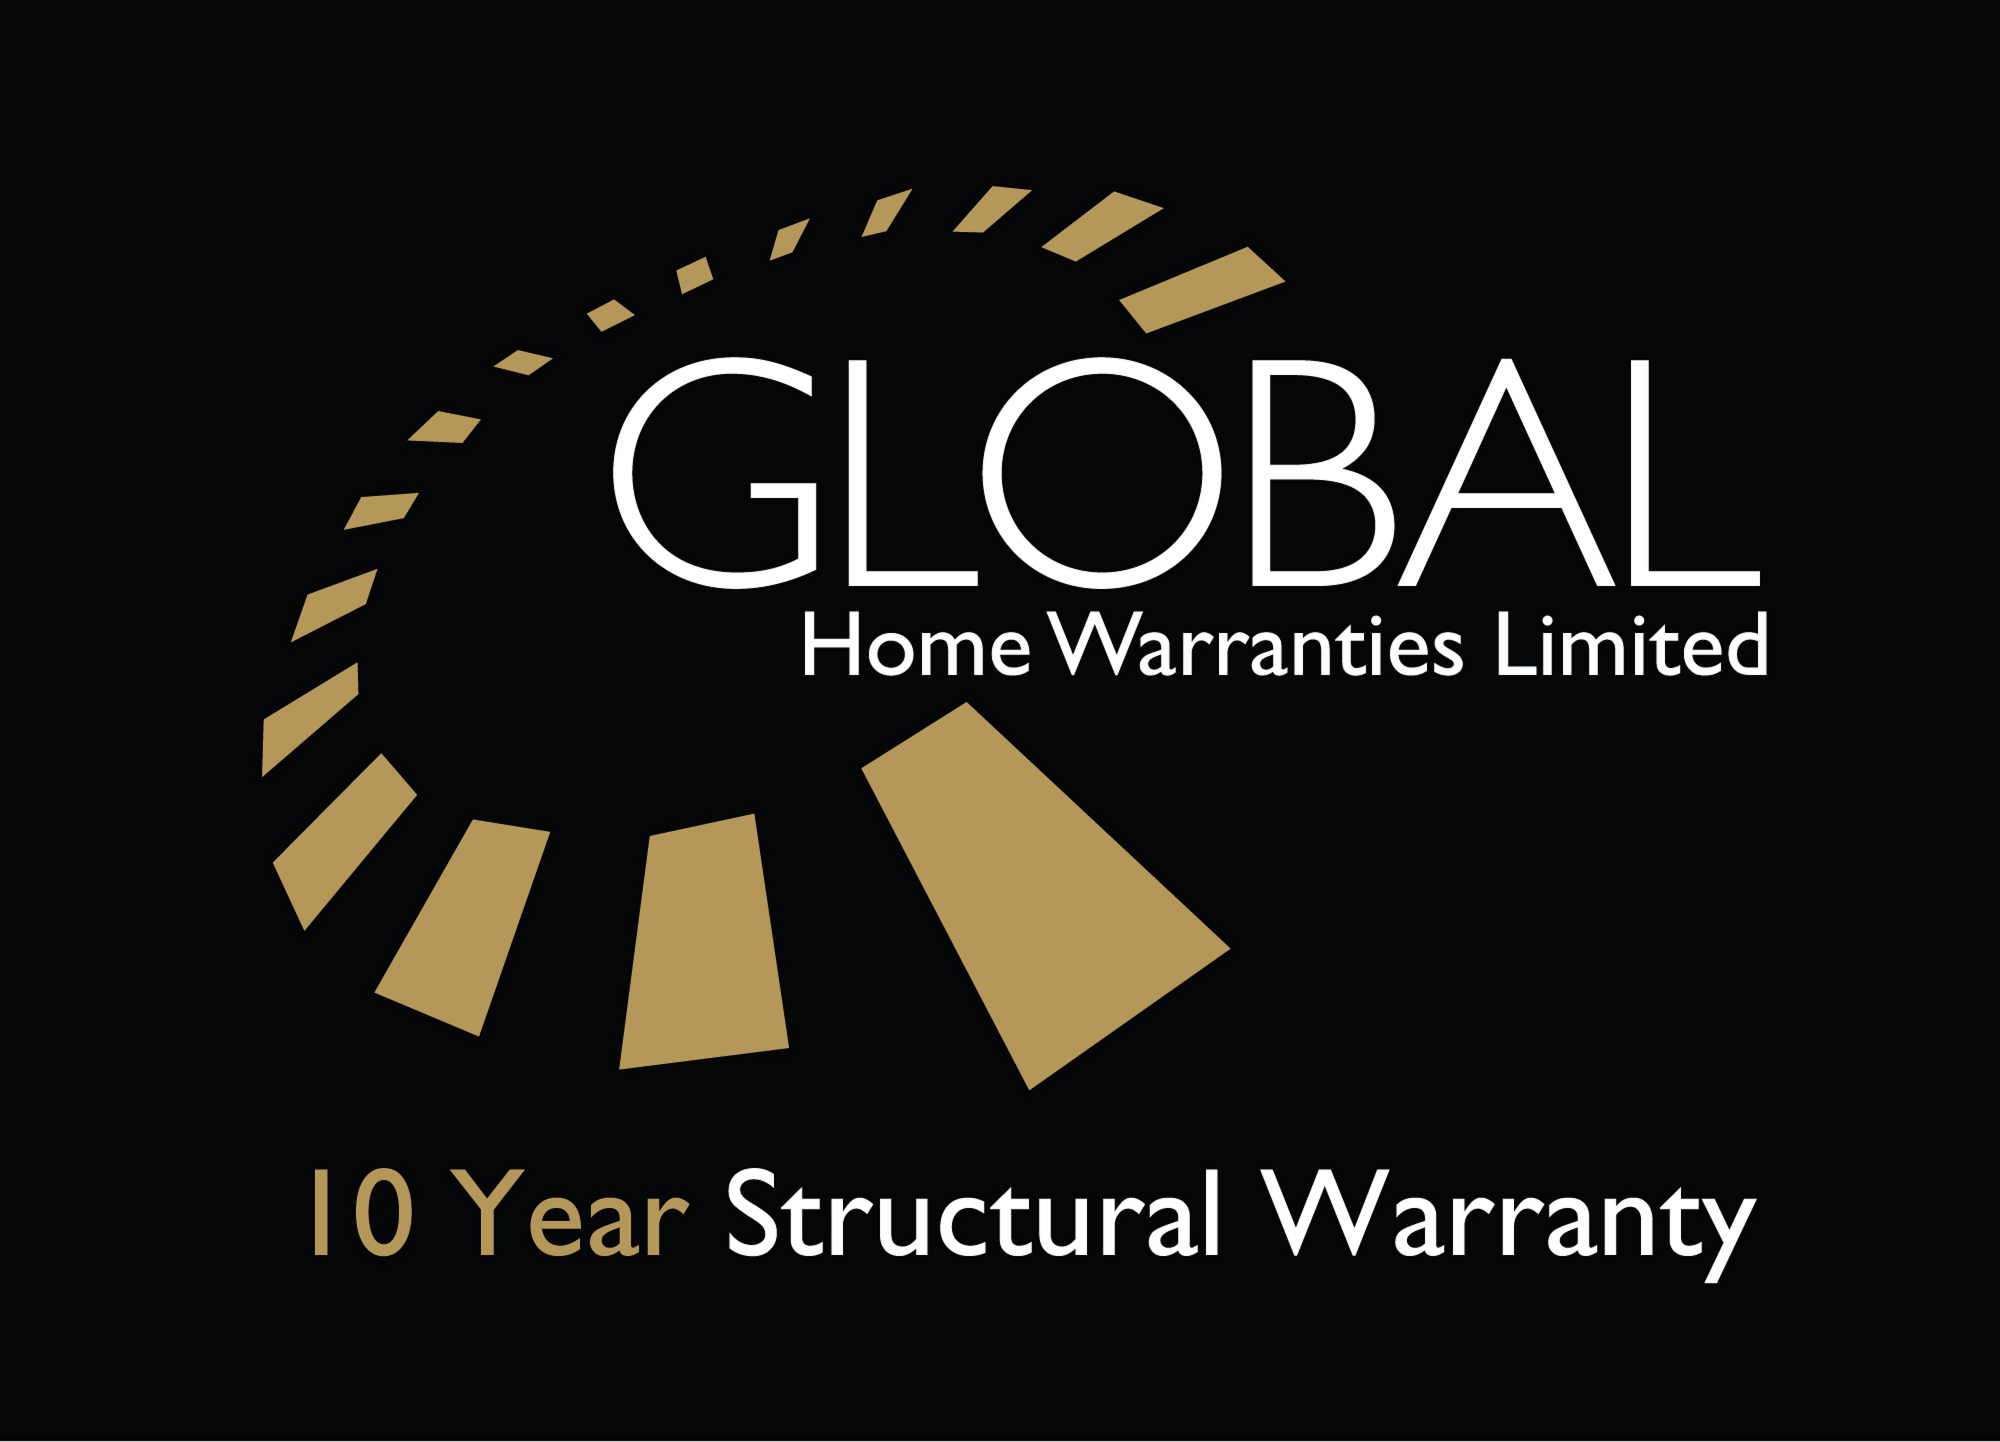 Global Home Warranties Ltd